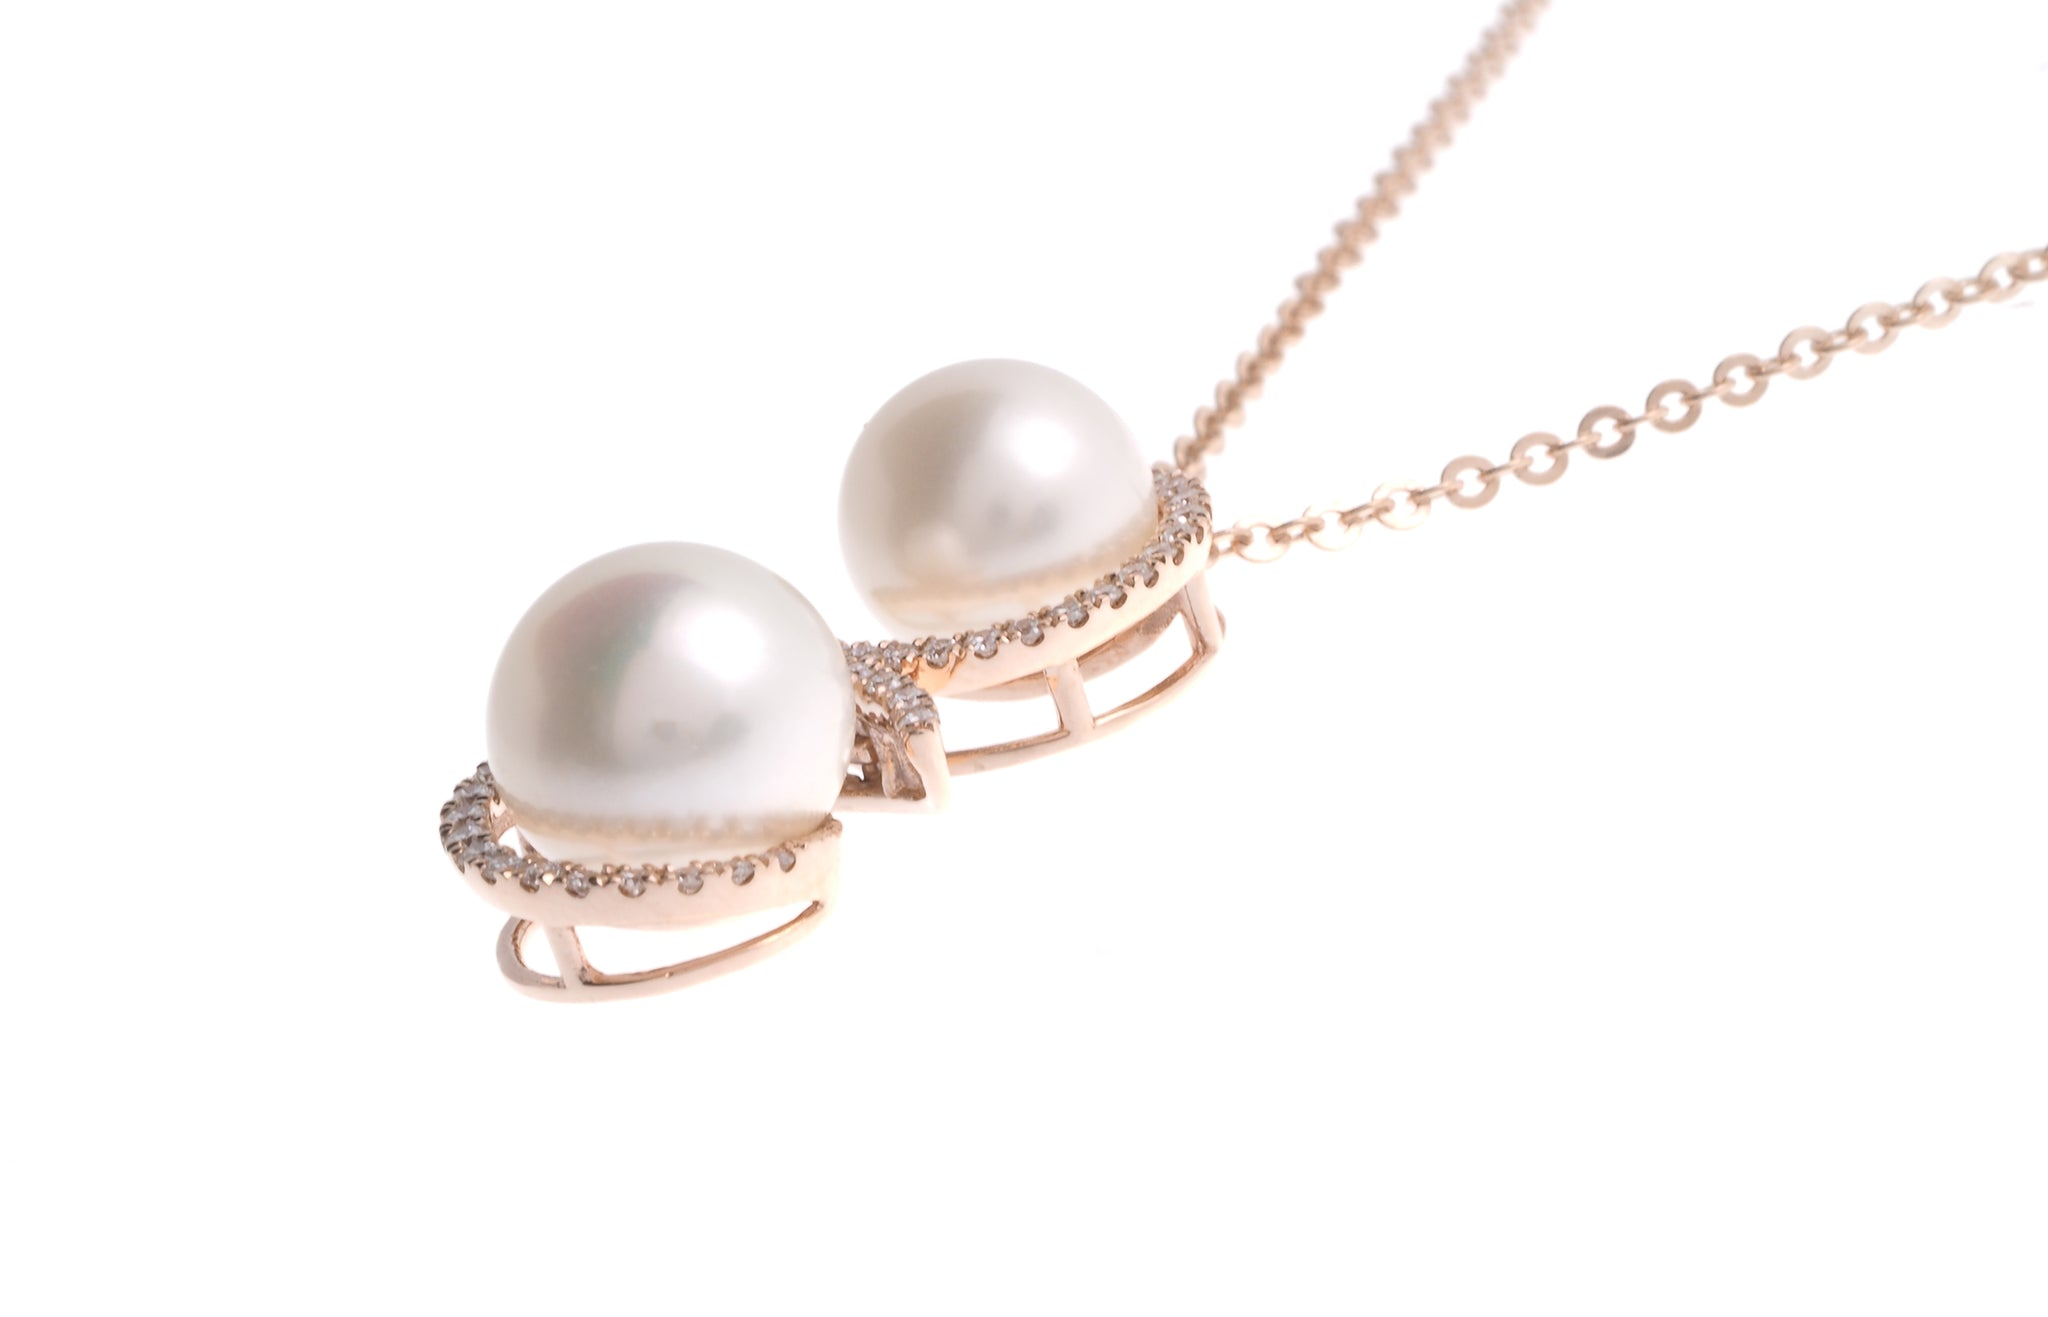 18ct Rose Gold Diamond and Cultured Pearl Pendant with Chain (P35667-15)